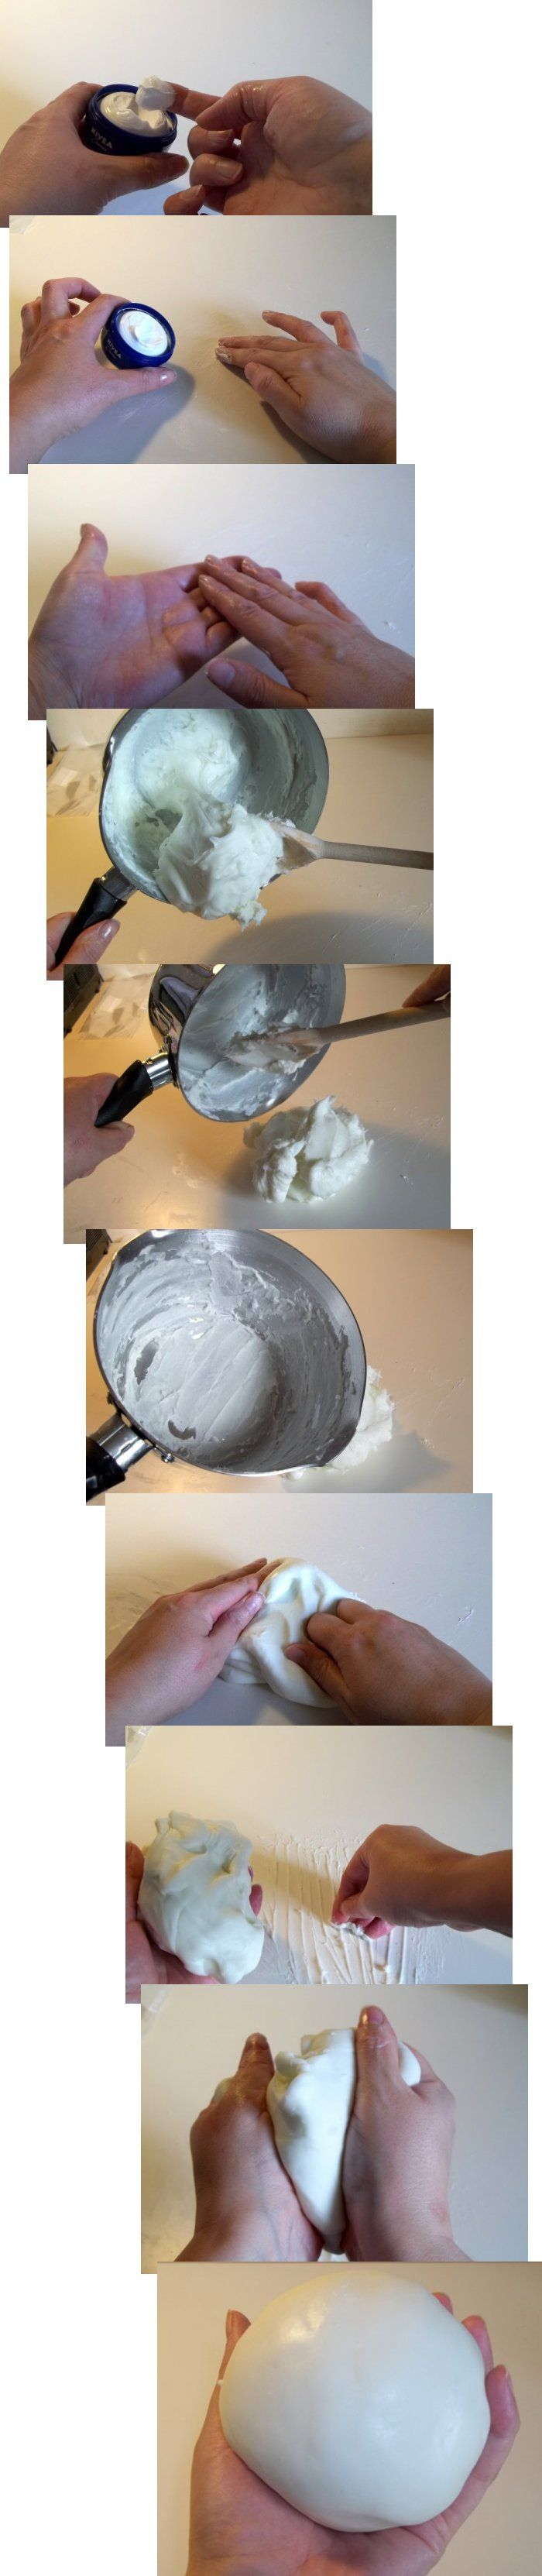 Things to make and do - Cold Porcelain Clay http://www.things-to-make-and-do.co.uk/sculpting-and-modelling/cold-porcelain-clay/cold-porcelain-clay.html